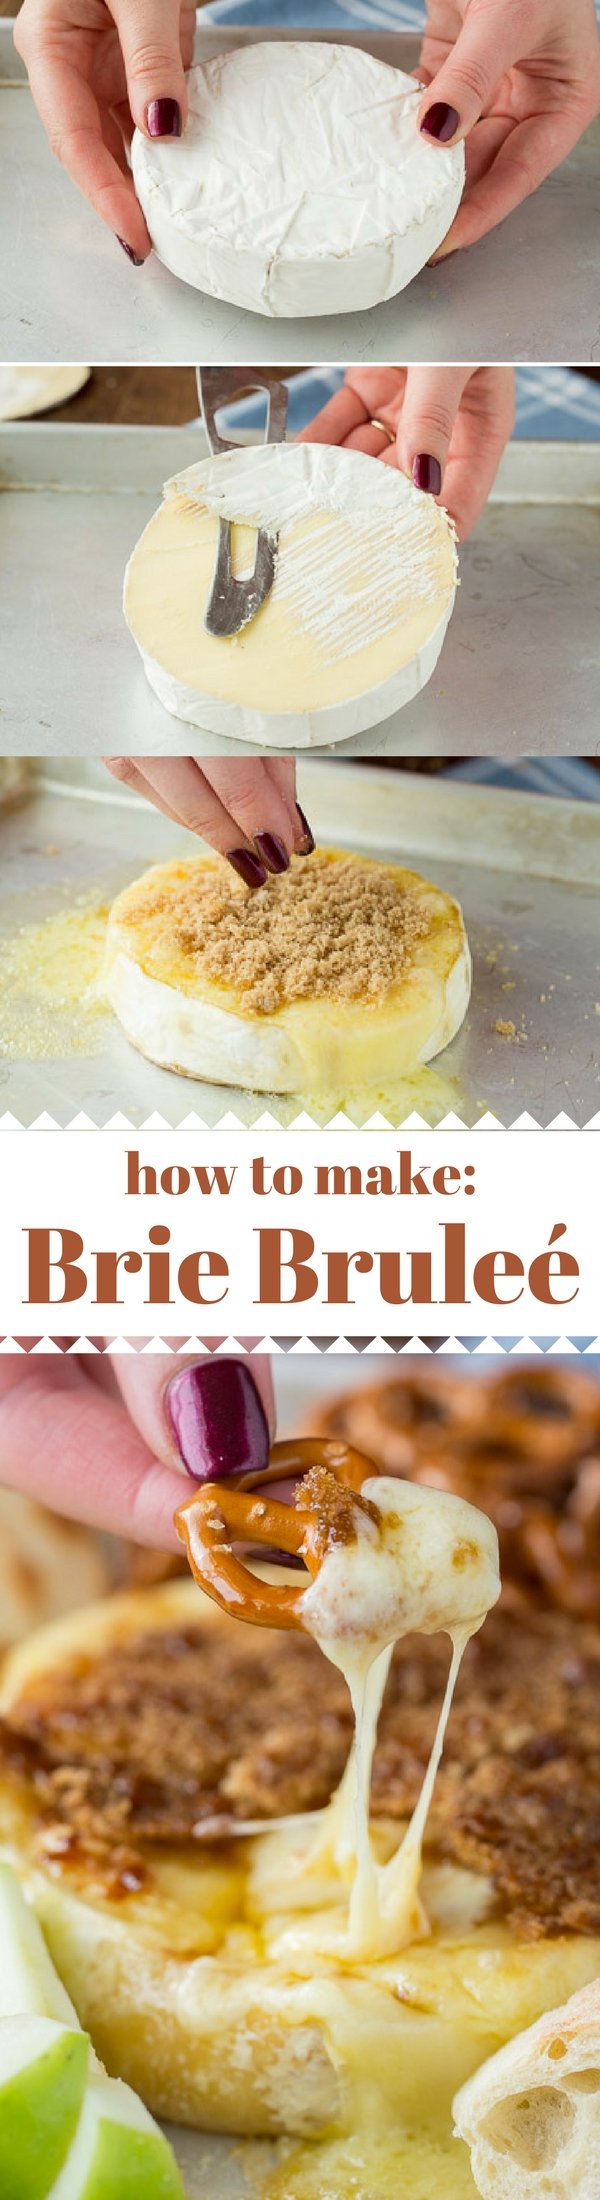 How to make Brie Brulee, this is my favorite appetizer because it's so easy to make! And looks fancy!